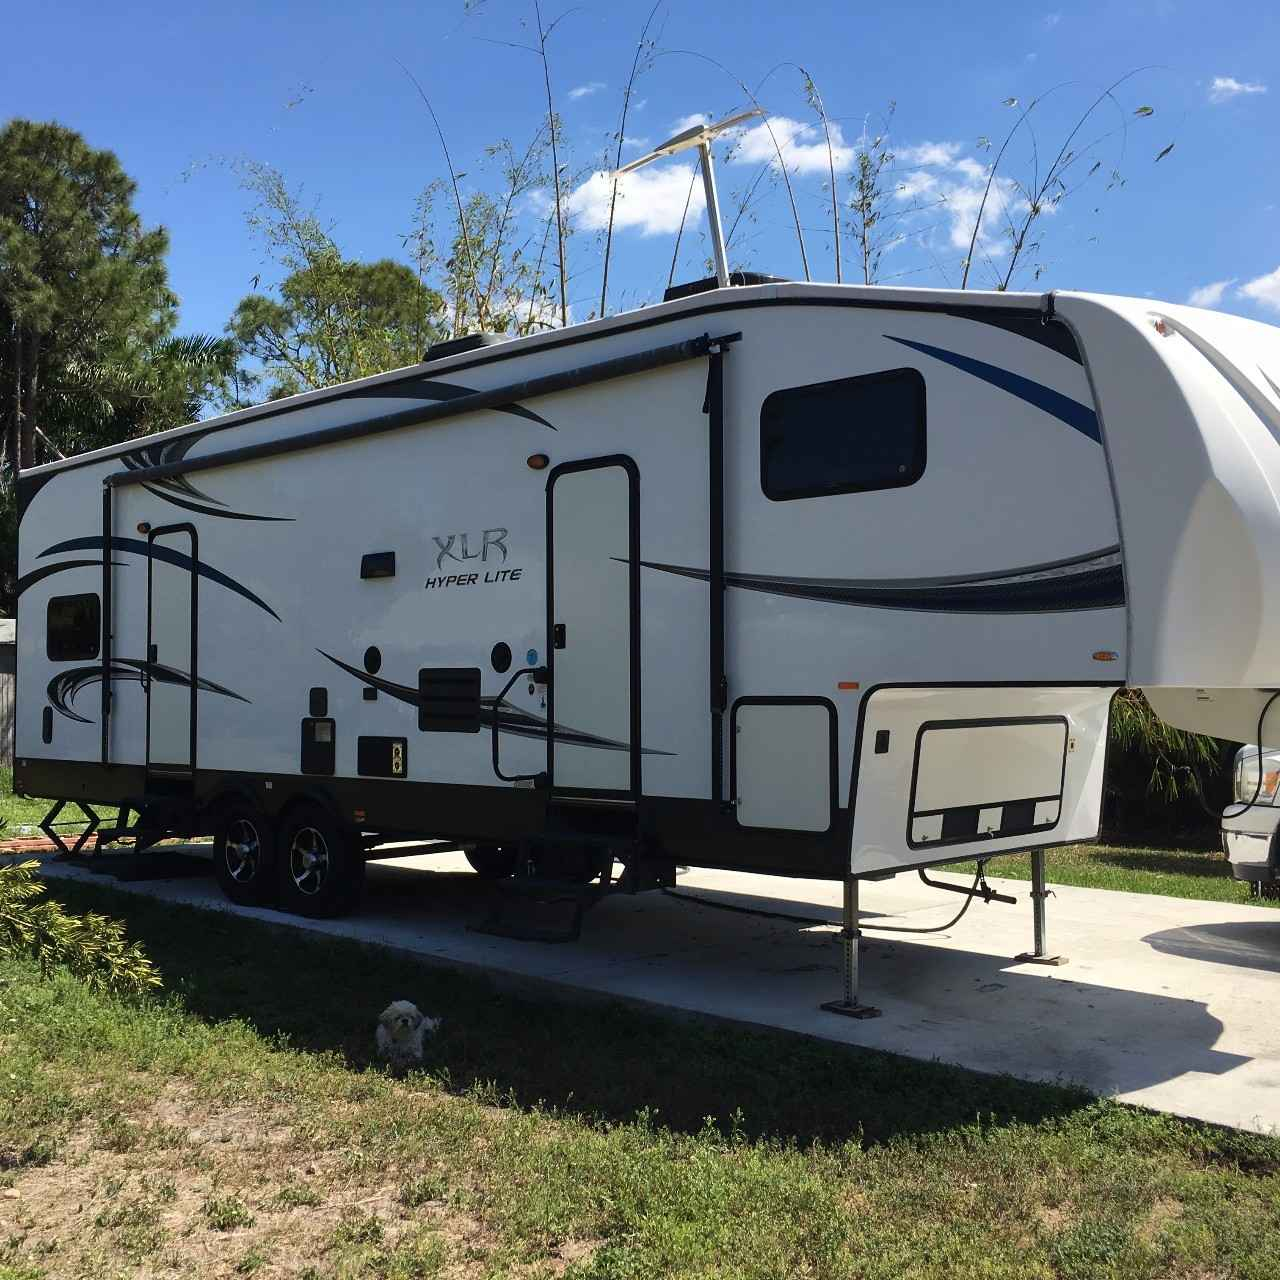 Toy Hauler With Outdoor Kitchen: 2013 Used Forest River HYPER LITE XLR Toy Hauler In Florida FL